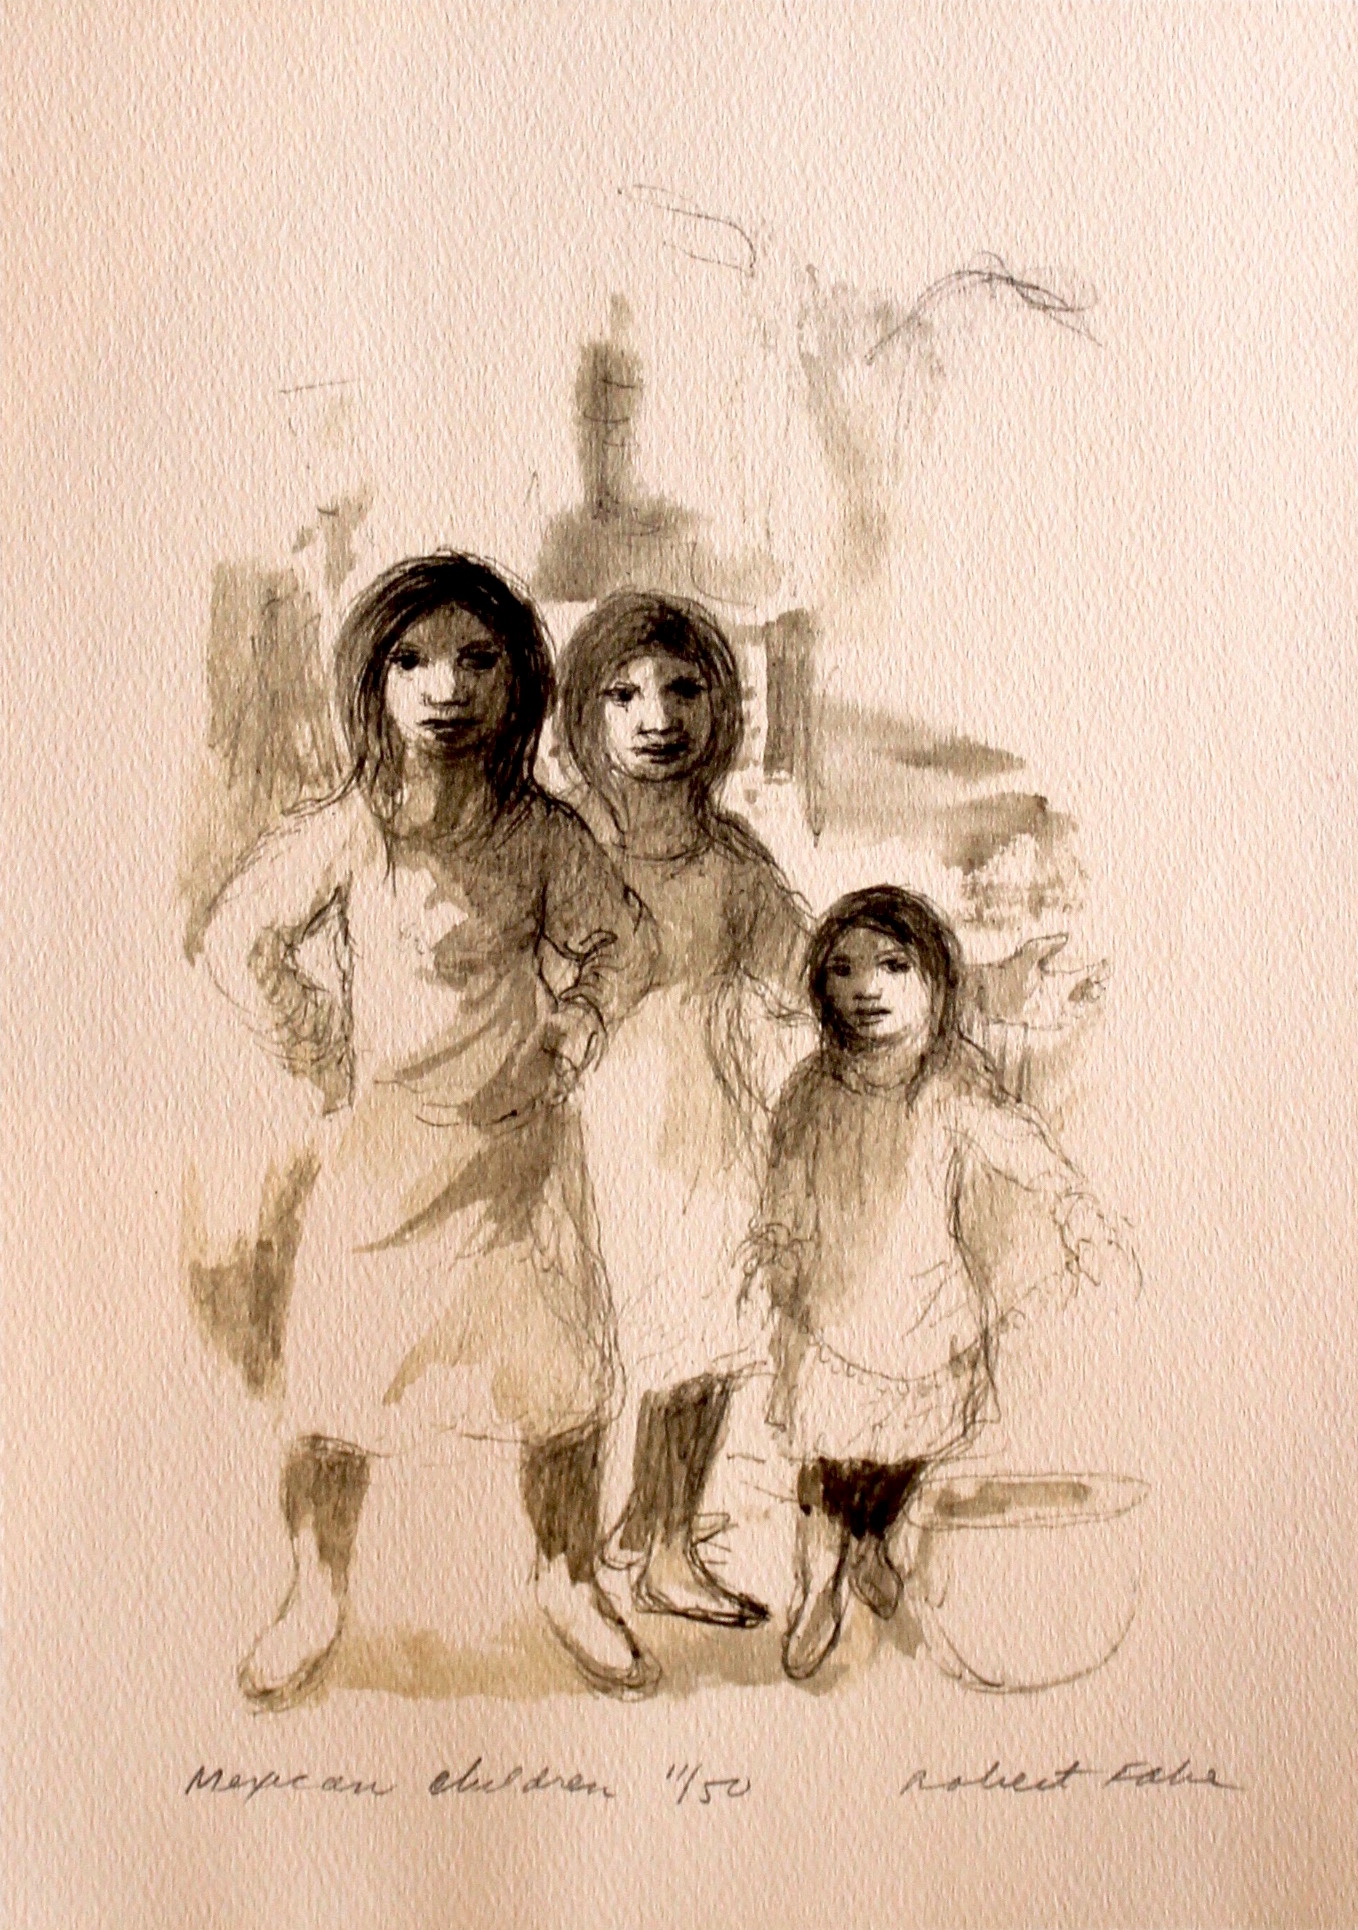 """Mexican Children"", print ed. 11/50, 13.5x11 in"